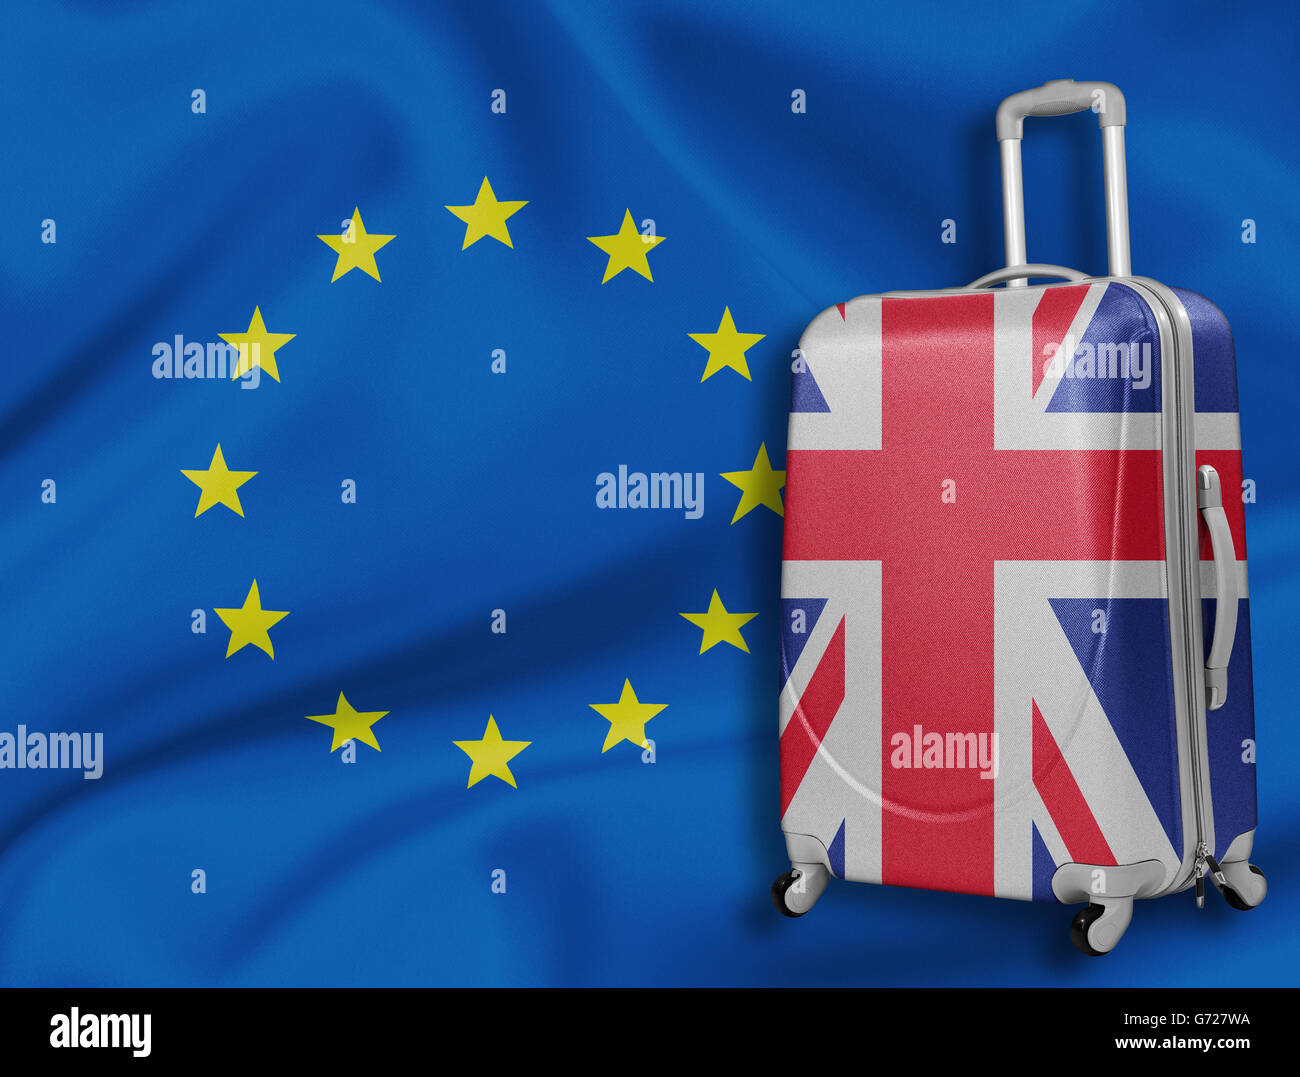 Brexit illustration. British baggage with EU flag behind. - Stock Image